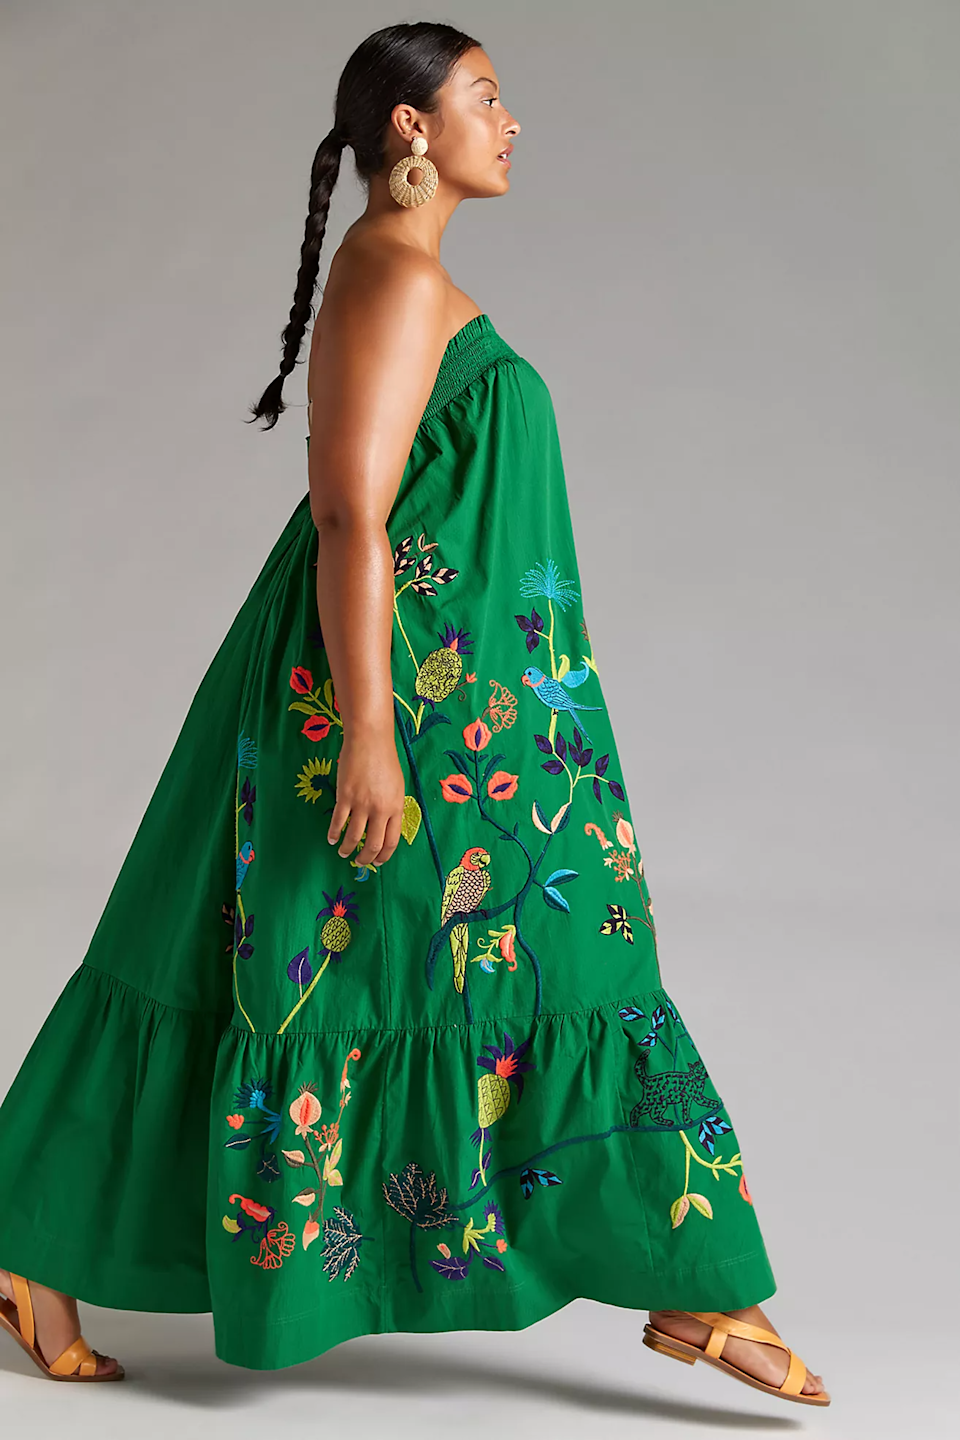 """<h2>Anthropologie Ruffled Floral Maxi Dress<br></h2><br><strong>Sizes Available: 2X</strong><br><br><em>Shop <strong><a href=""""https://www.anthropologie.com/shop/ruffled-floral-maxi-dress?category=plus-size-dresses&color=030&type=PLUS&viewcode=c&quantity=1"""" rel=""""nofollow noopener"""" target=""""_blank"""" data-ylk=""""slk:Anthropologie"""" class=""""link rapid-noclick-resp"""">Anthropologie</a></strong></em><br><br><strong>Anthropologie</strong> Ruffled Floral Maxi Dress, $, available at <a href=""""https://go.skimresources.com/?id=30283X879131&url=https%3A%2F%2Fwww.anthropologie.com%2Fshop%2Fruffled-floral-maxi-dress%3Fcategory%3Dplus-size-dresses%26color%3D030%26type%3DPLUS%26viewcode%3Dc%26quantity%3D1"""" rel=""""nofollow noopener"""" target=""""_blank"""" data-ylk=""""slk:Anthropologie"""" class=""""link rapid-noclick-resp"""">Anthropologie</a>"""